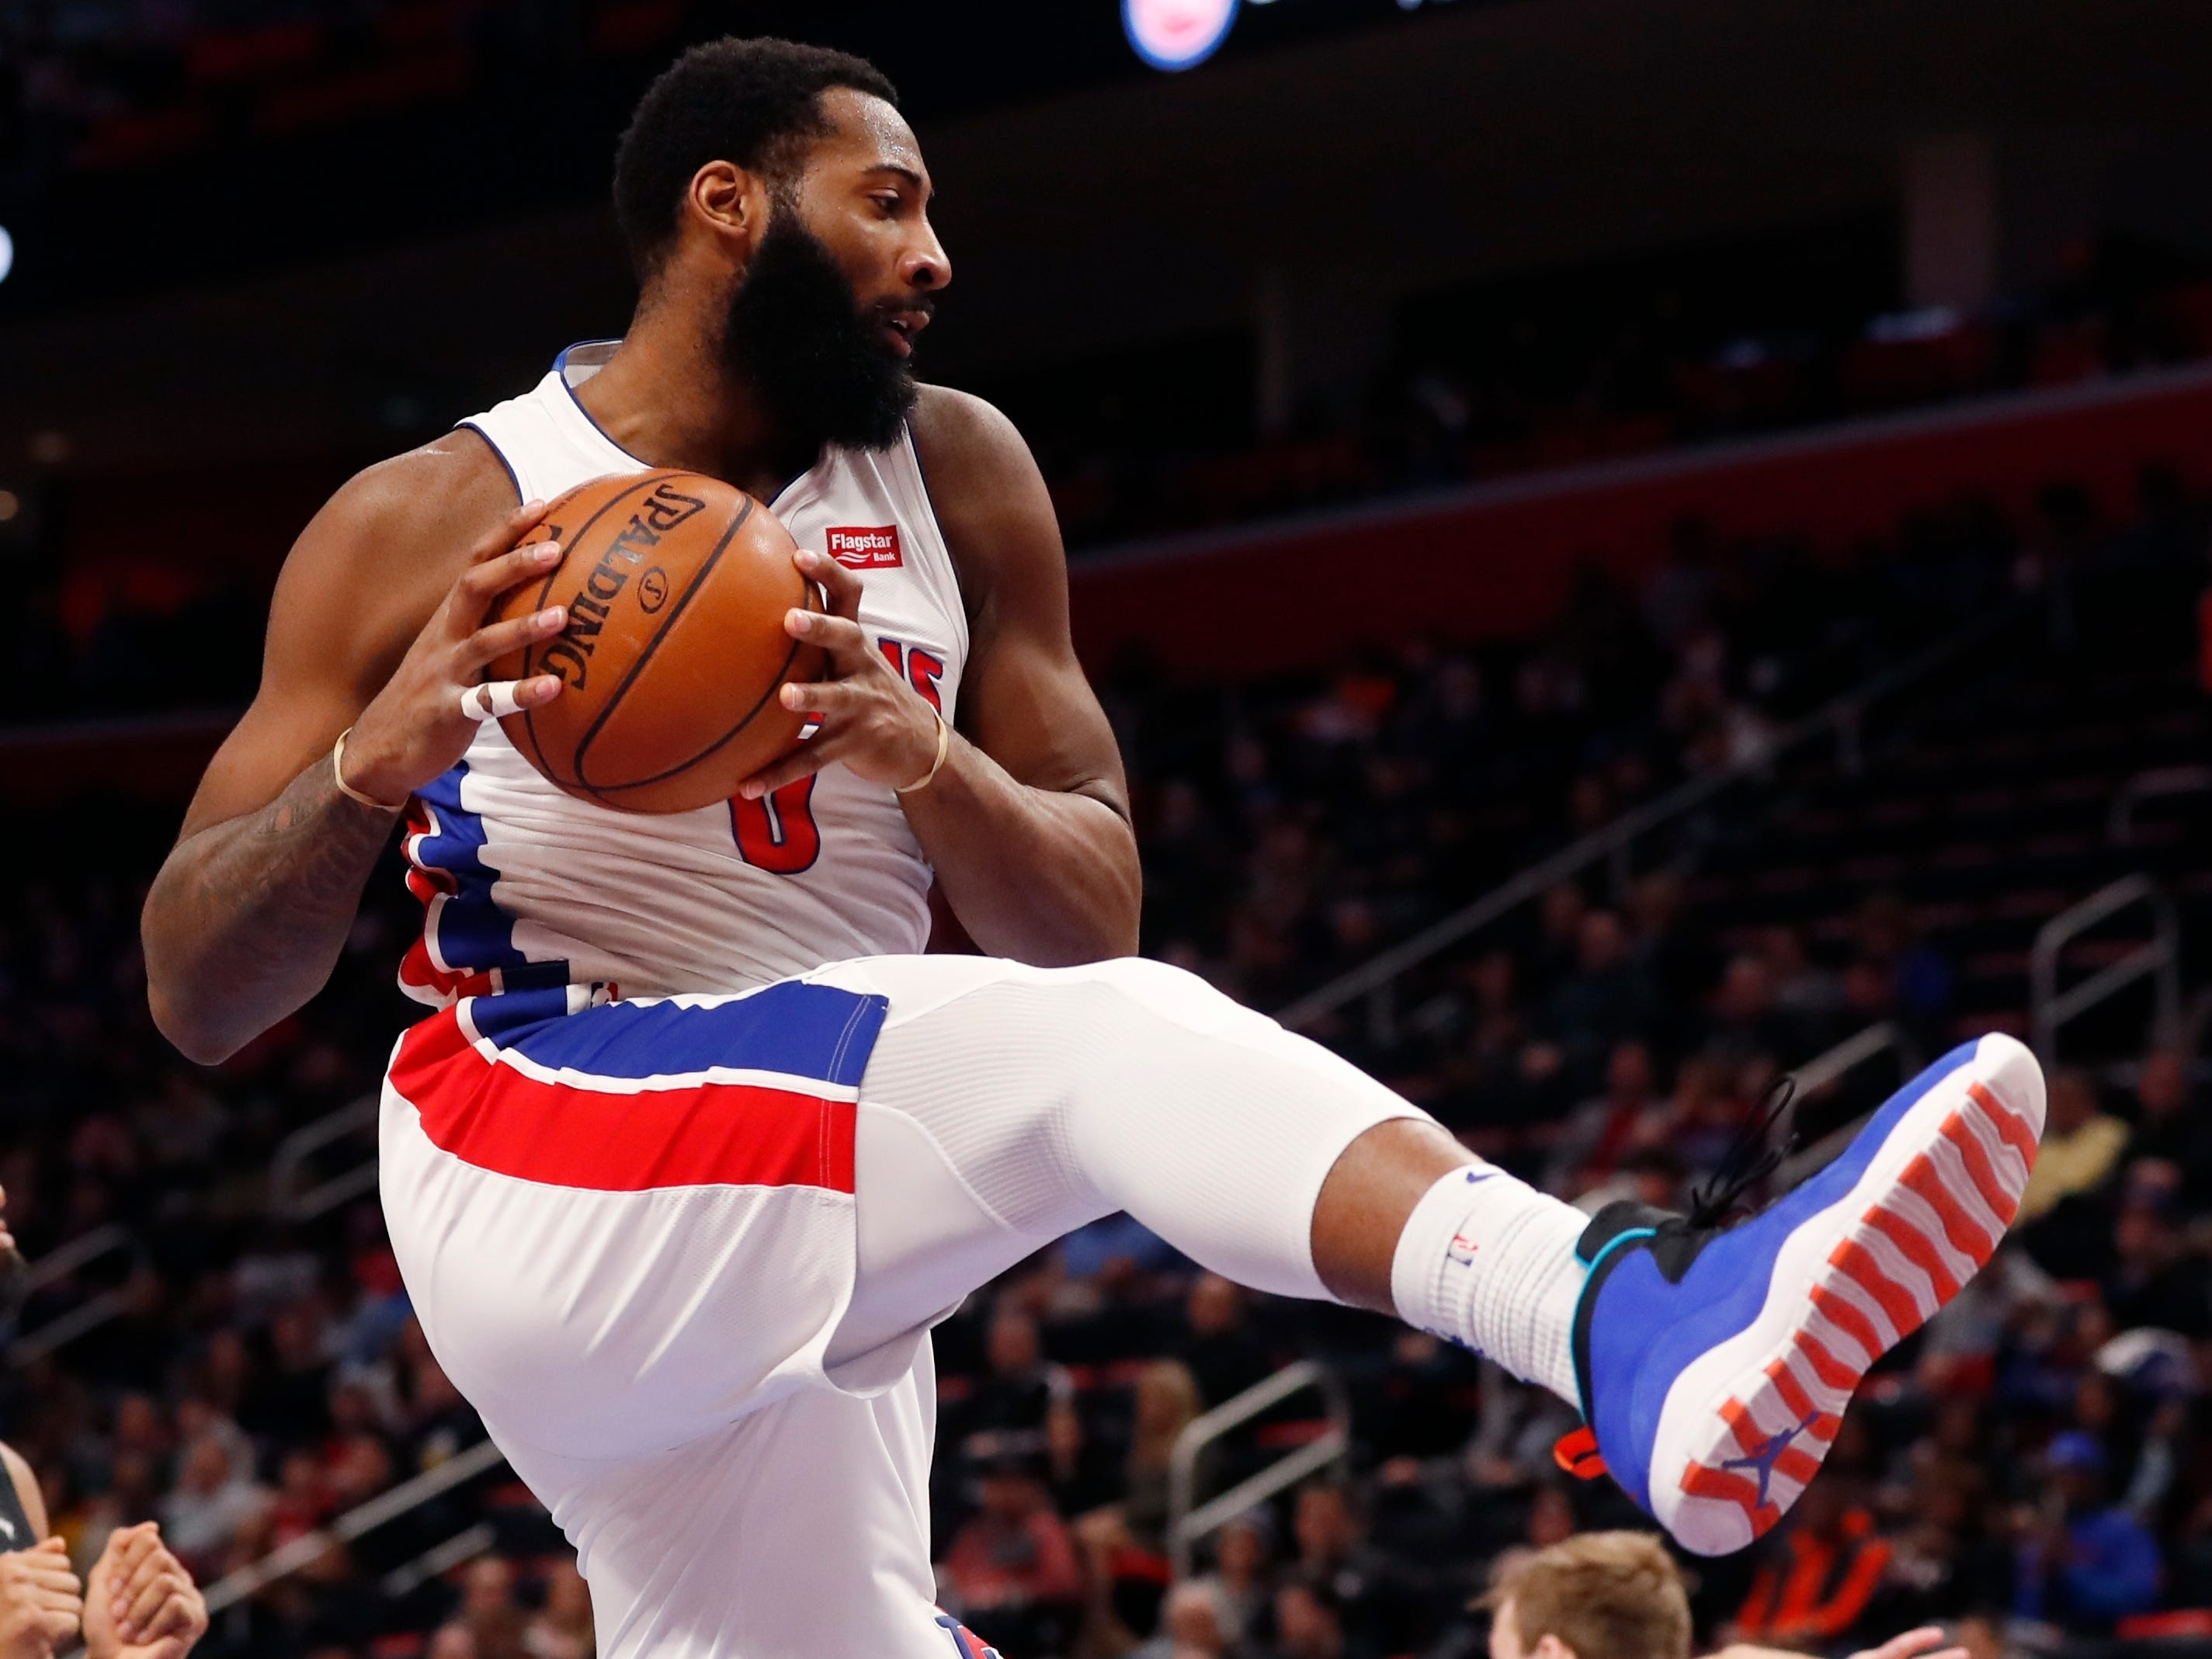 Detroit Pistons center Andre Drummond grabs a rebound during the second half.